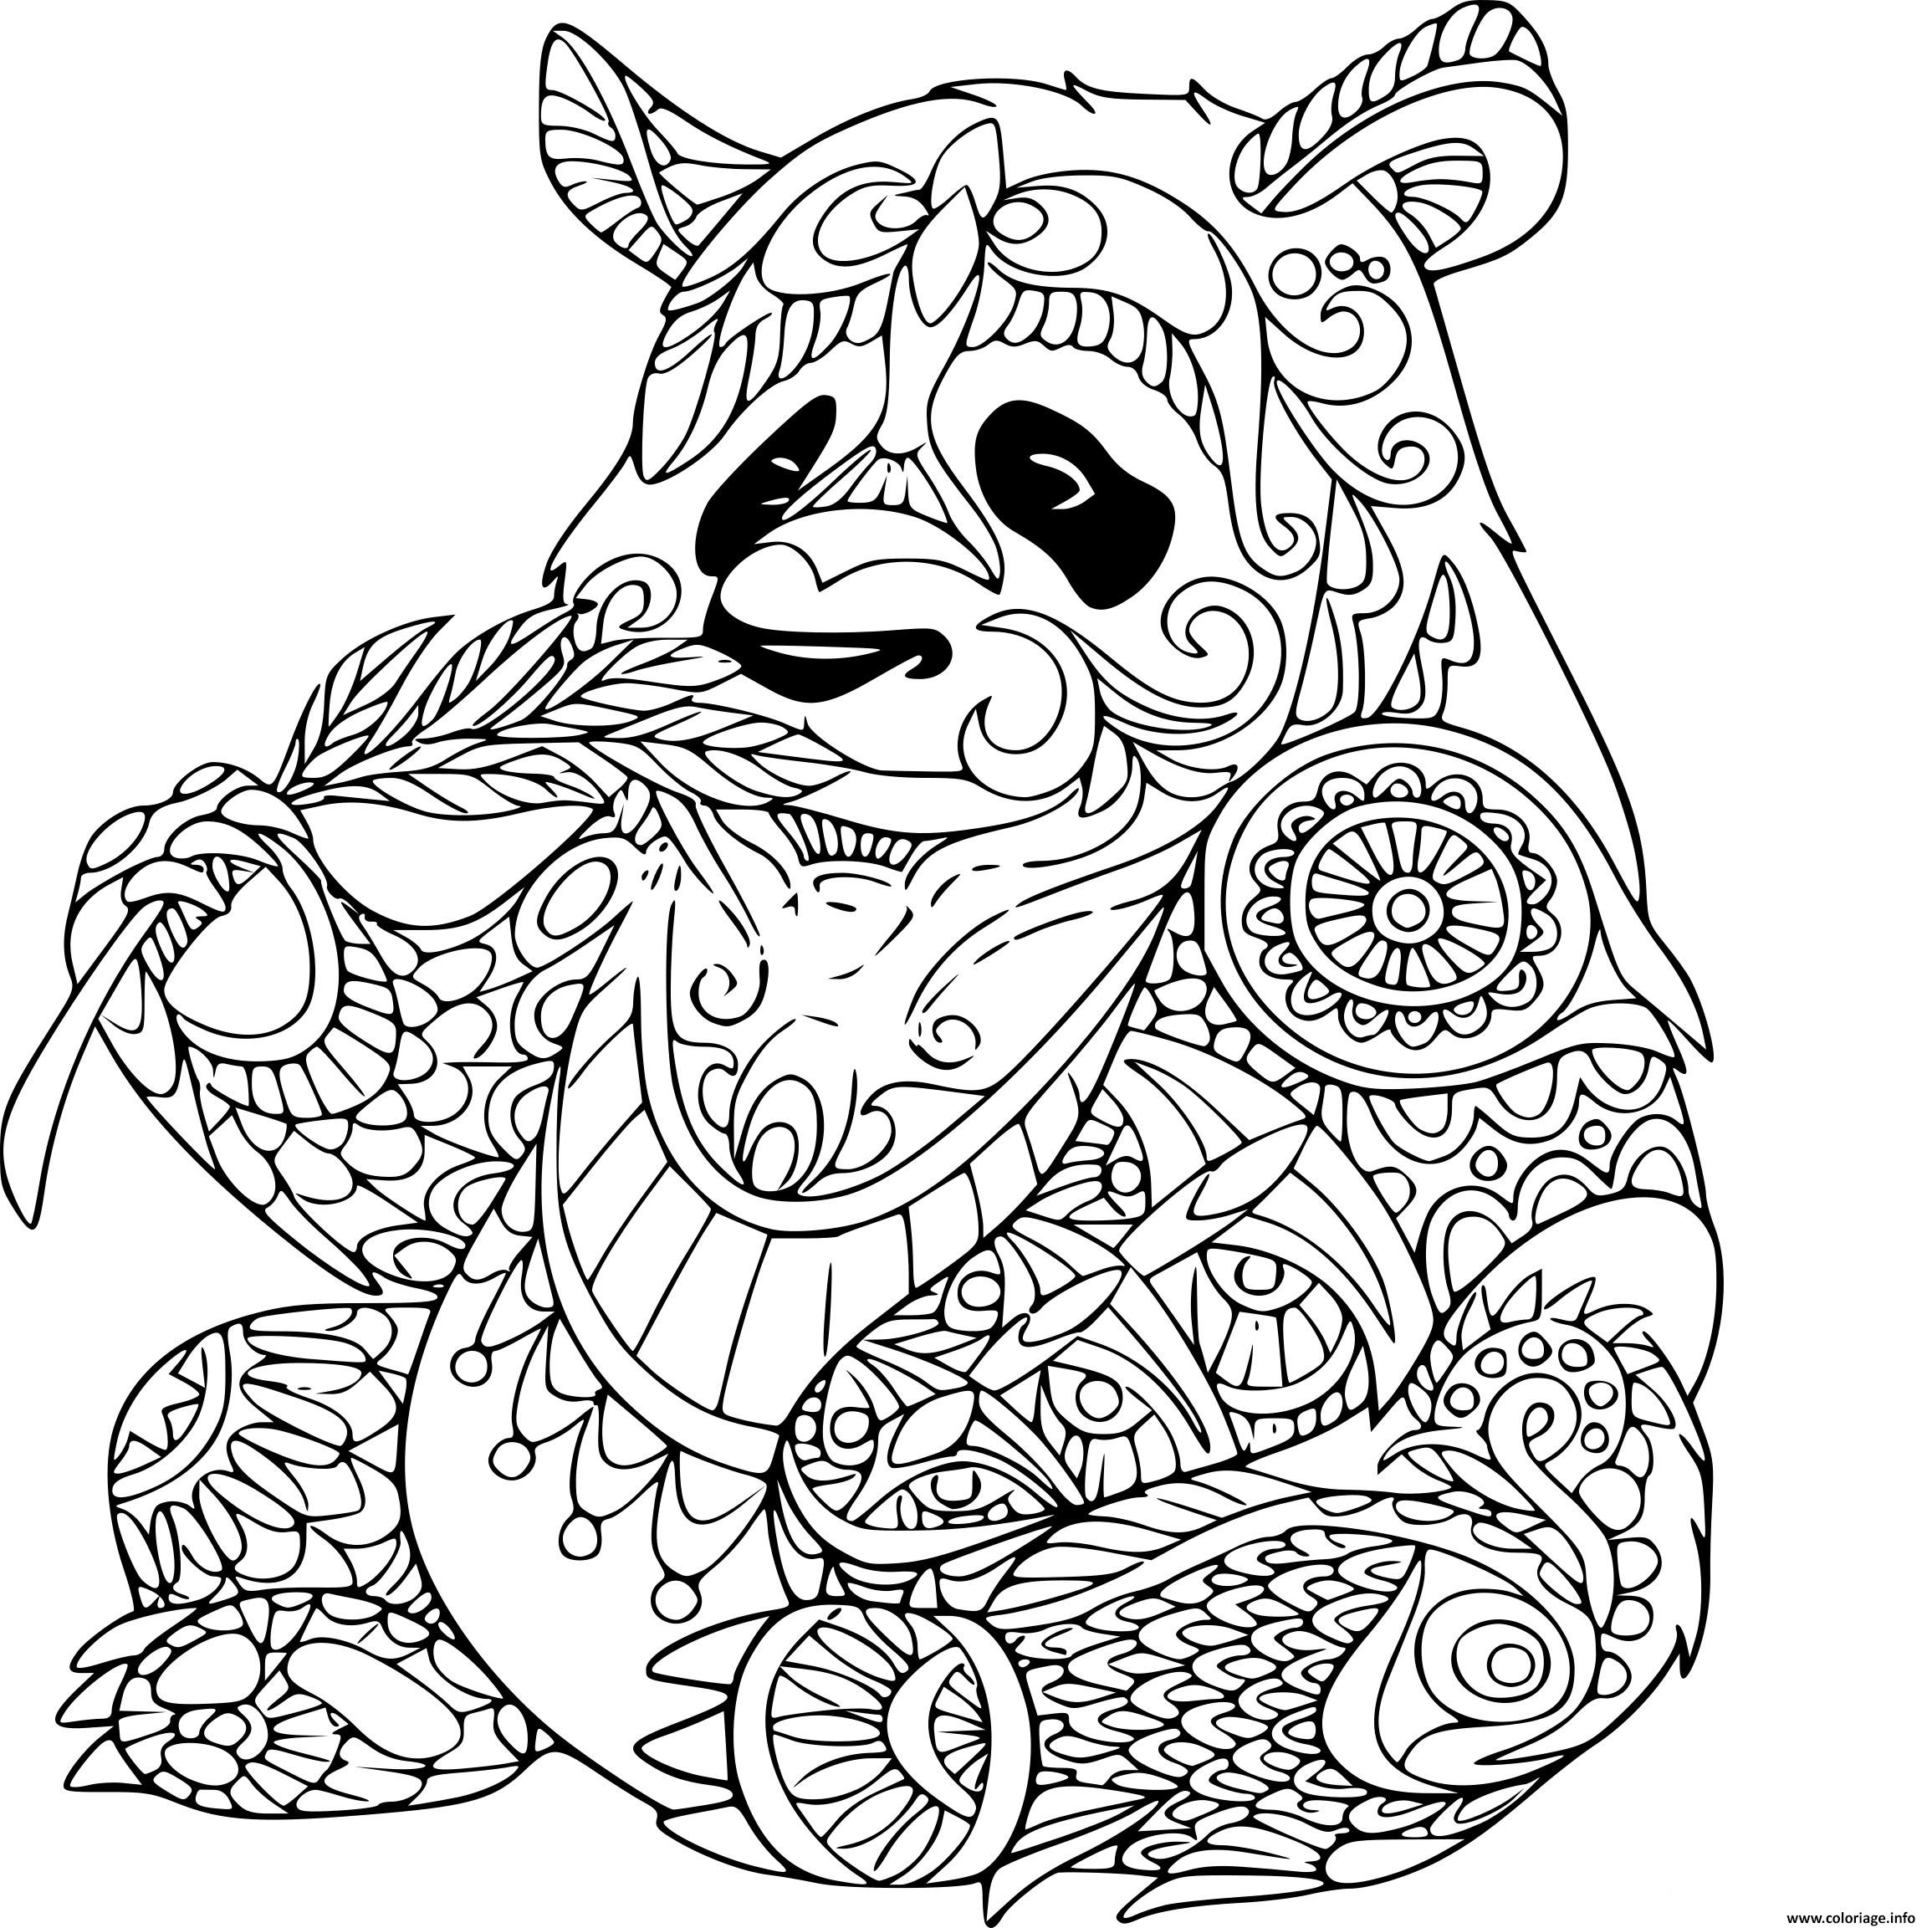 Coloriage Panda Mange Une Plante Adulte Animaux Zentangle Dessin